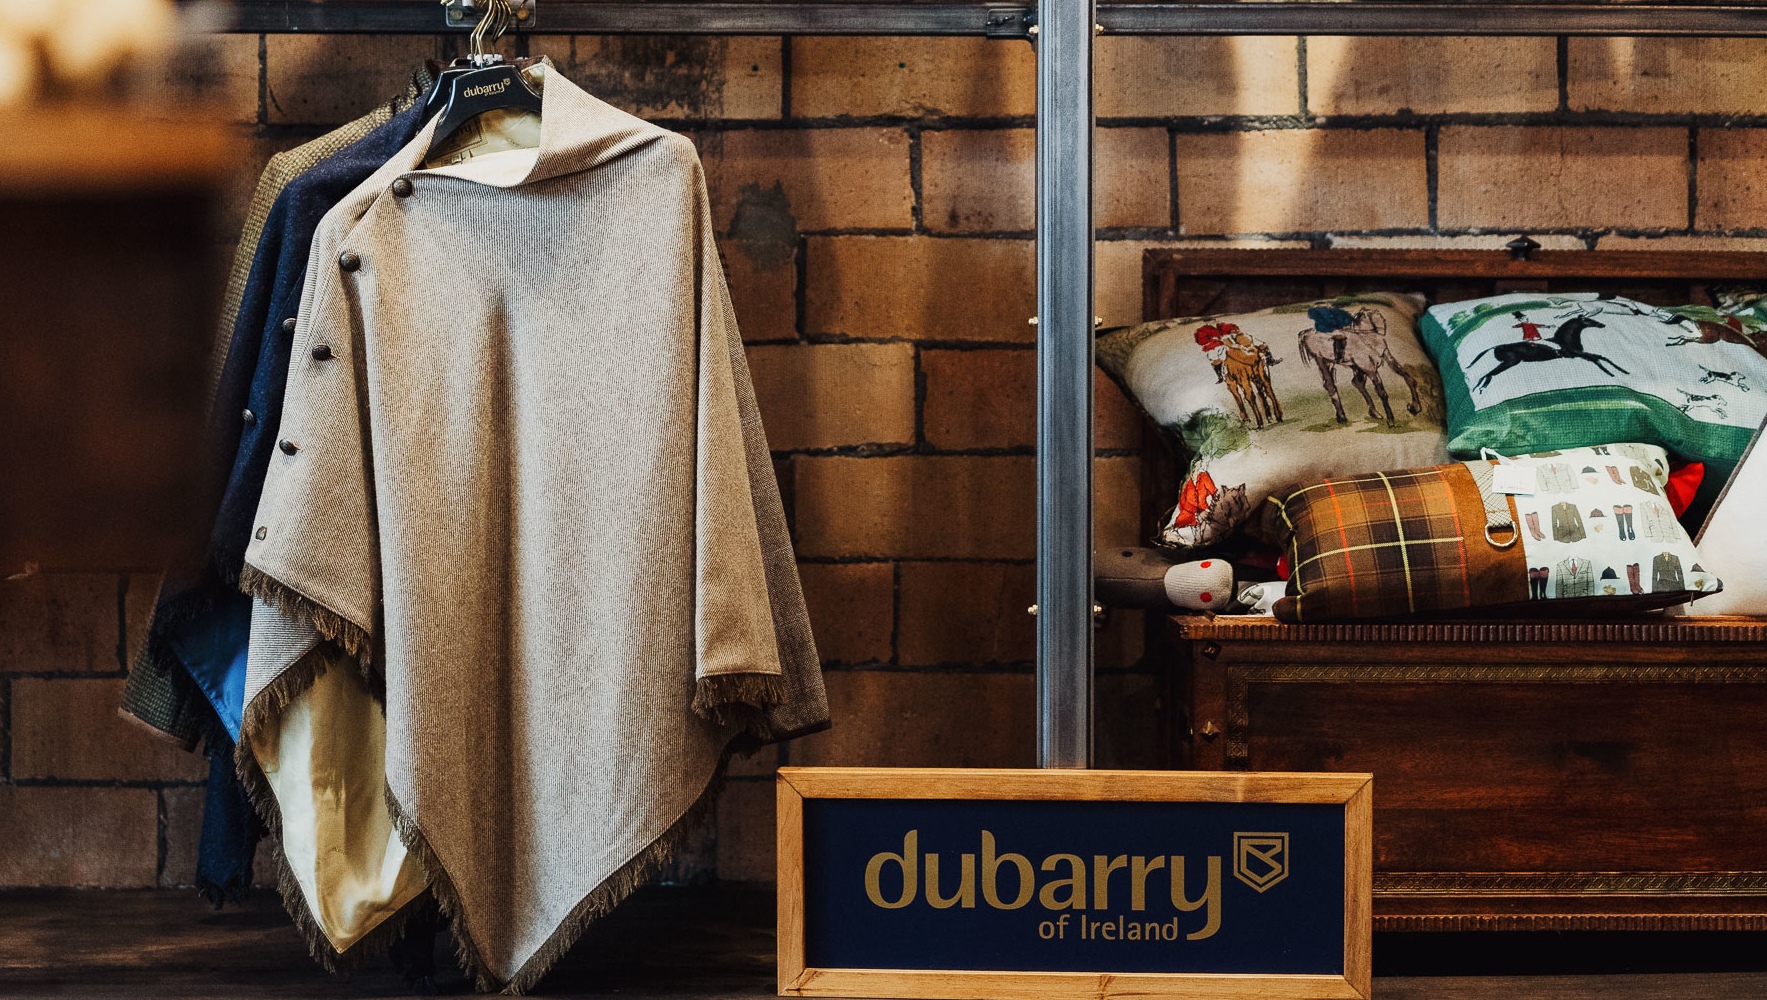 DUBARRY TRUNK SHOW IN METAMORA